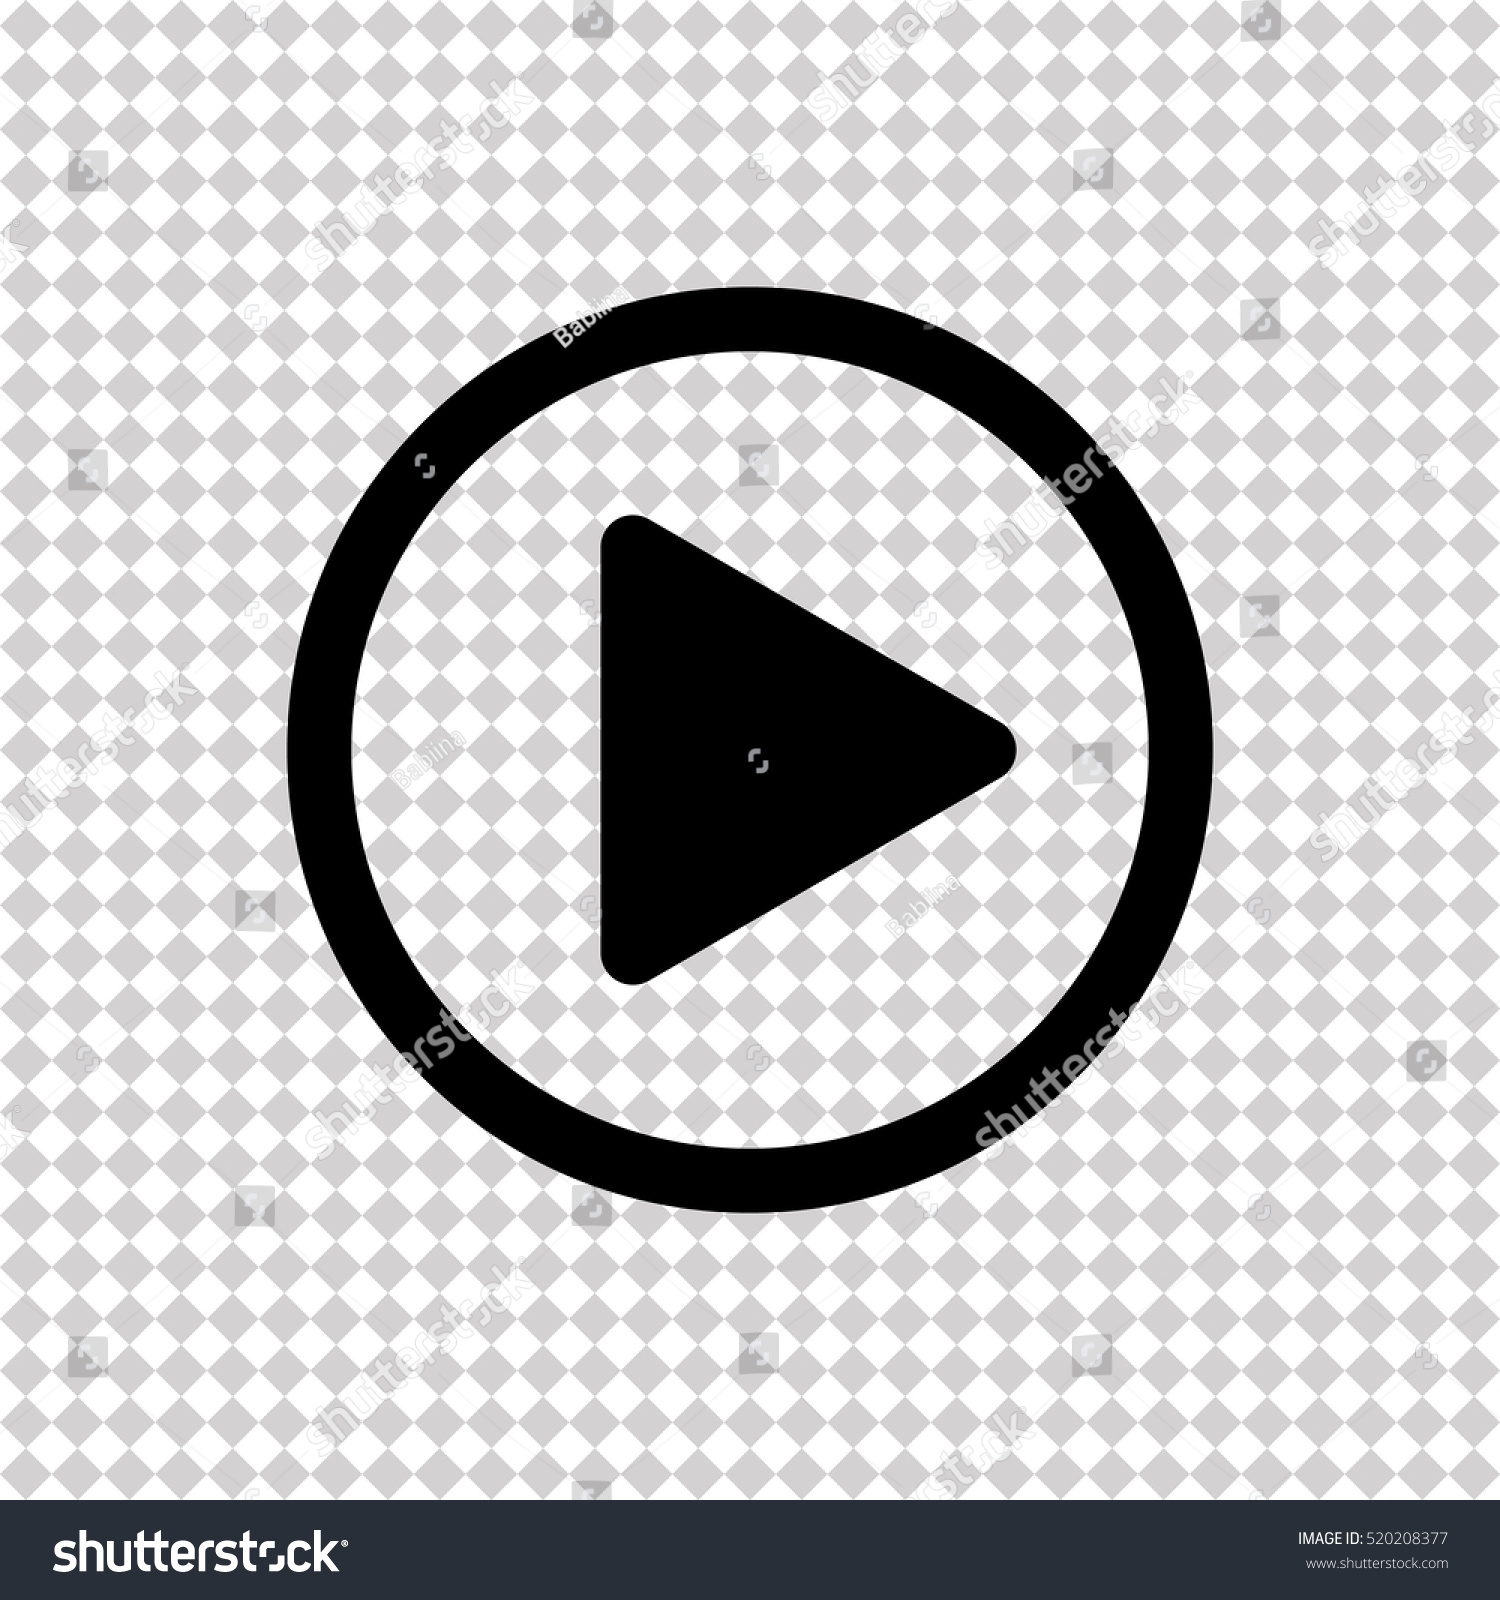 Play button  - black vector icon #520208377